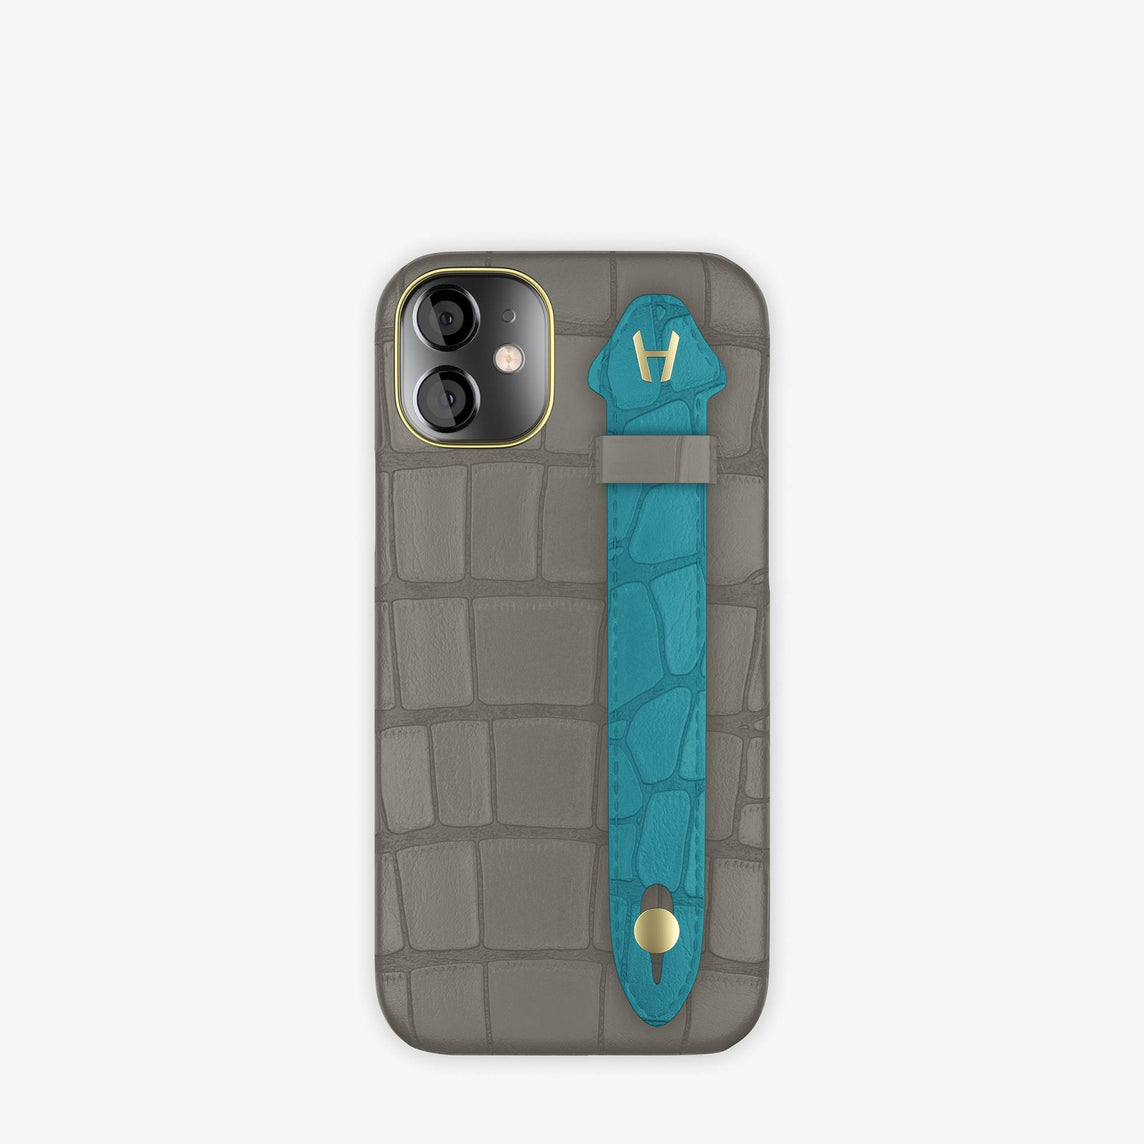 Alligator Side Finger Case iPhone 12 Mini | Grey Pearl/Blue Teal -Yellow Gold